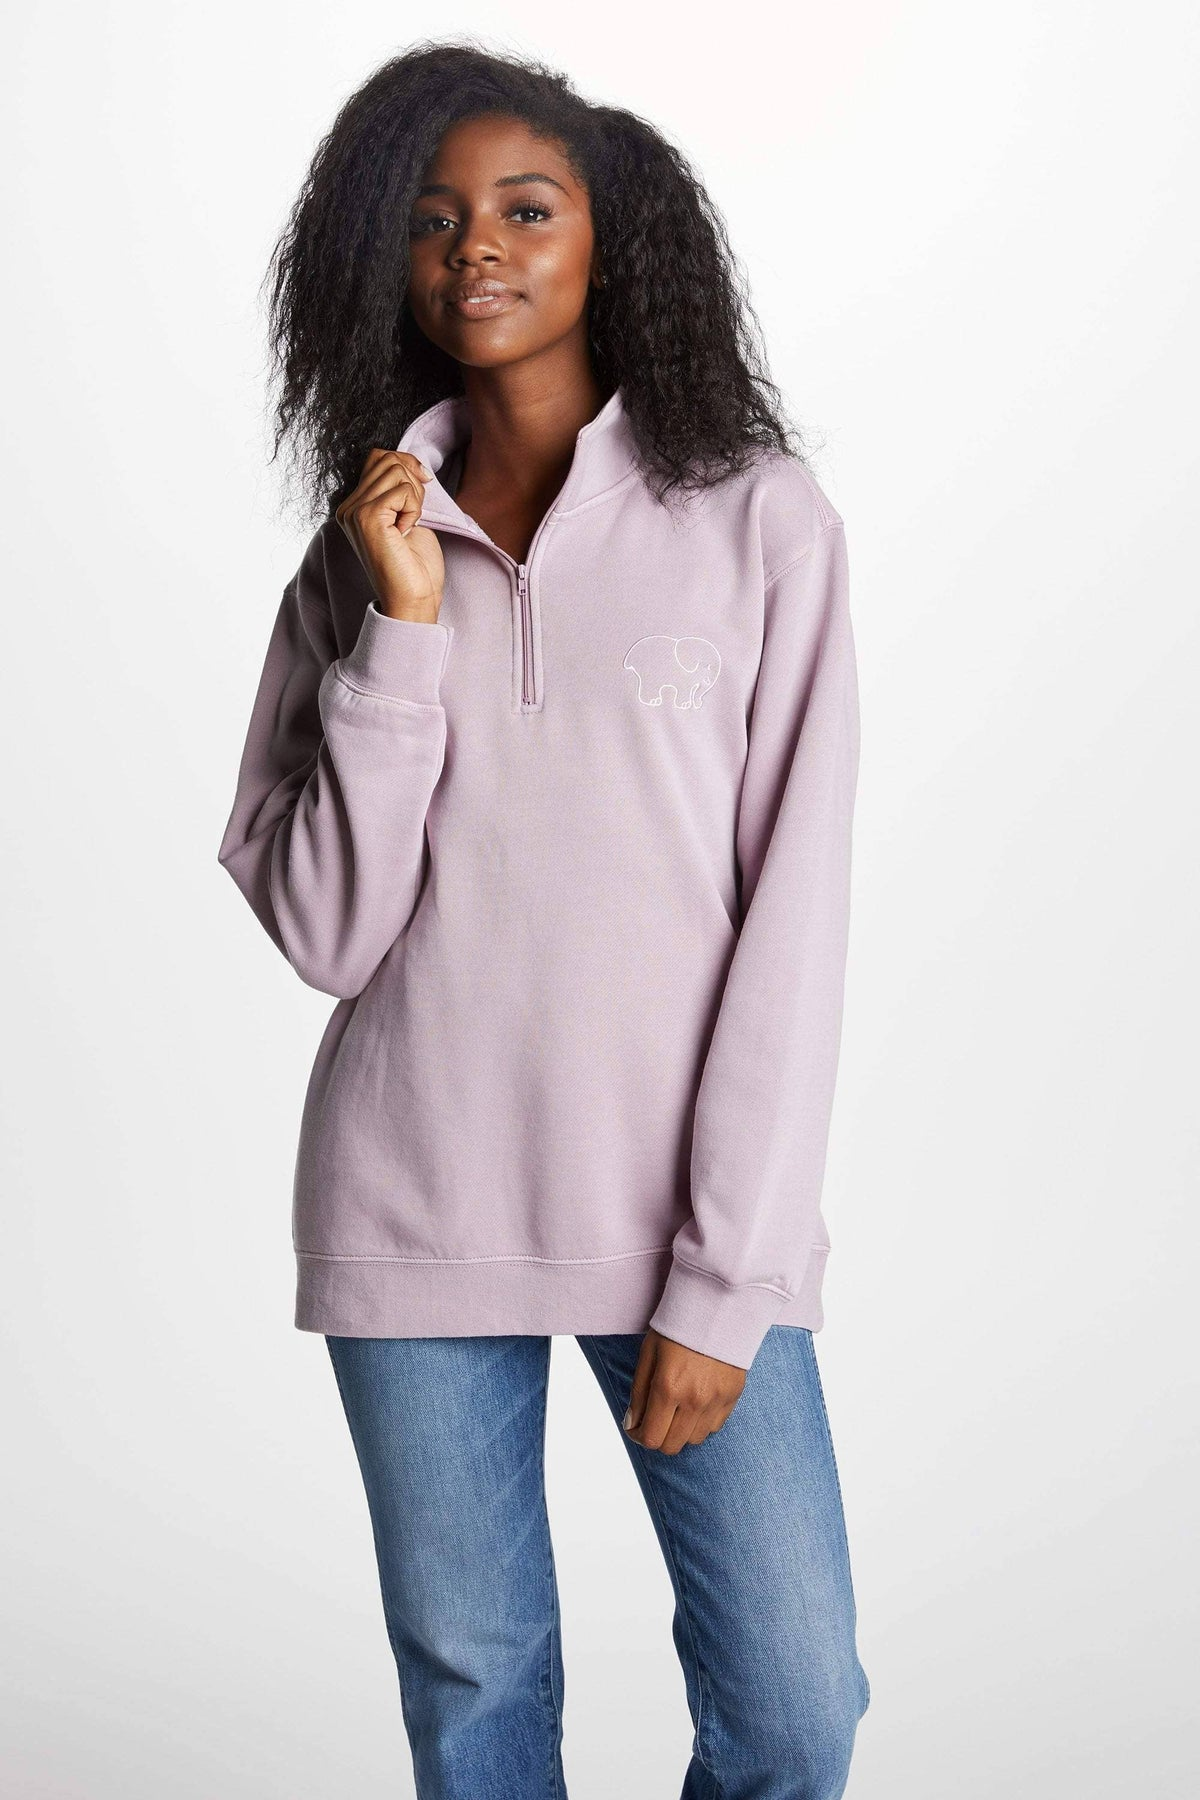 Ivory Ella Women's Sweatshirts XS Nightshade Quarter Zip Sweatshirt